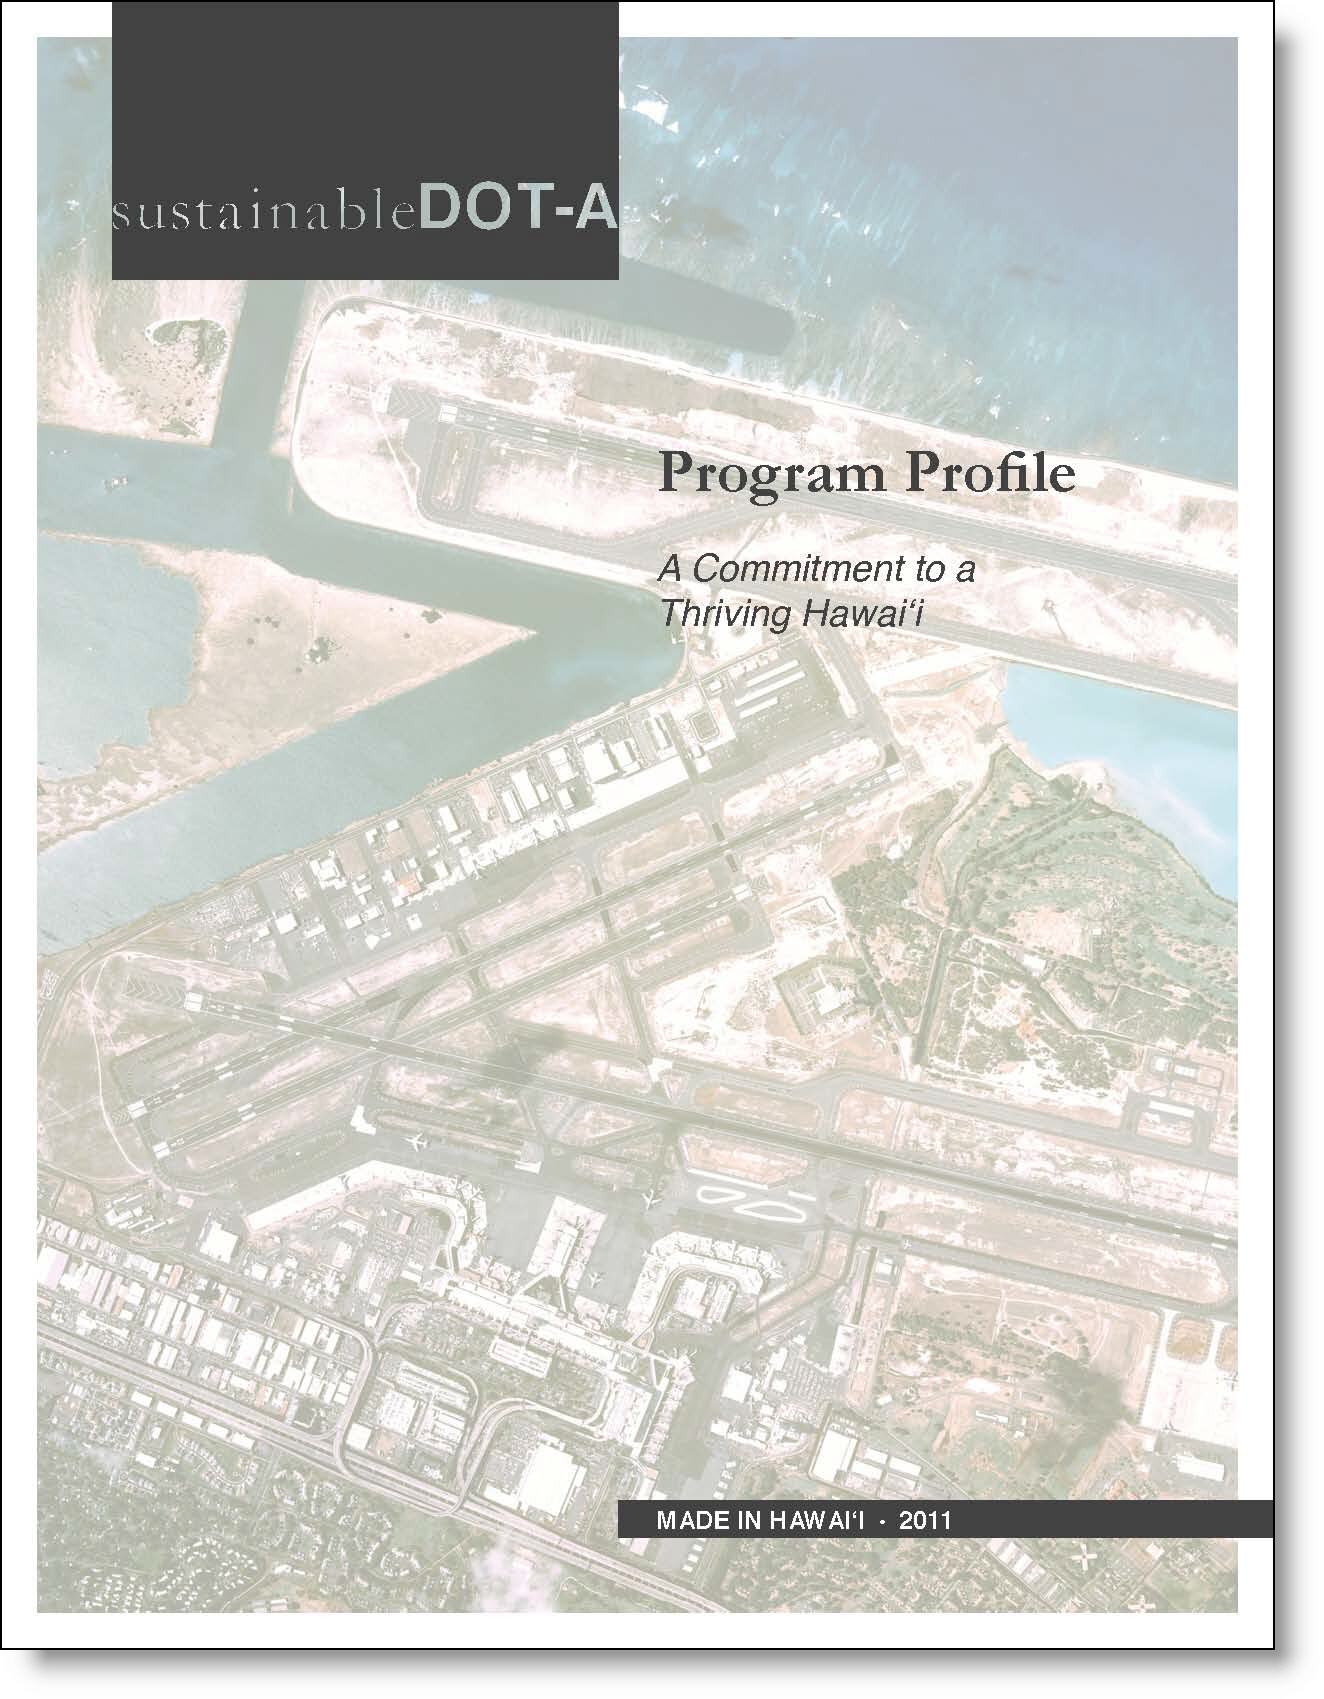 SustainableDOT-A Program Profile Cover